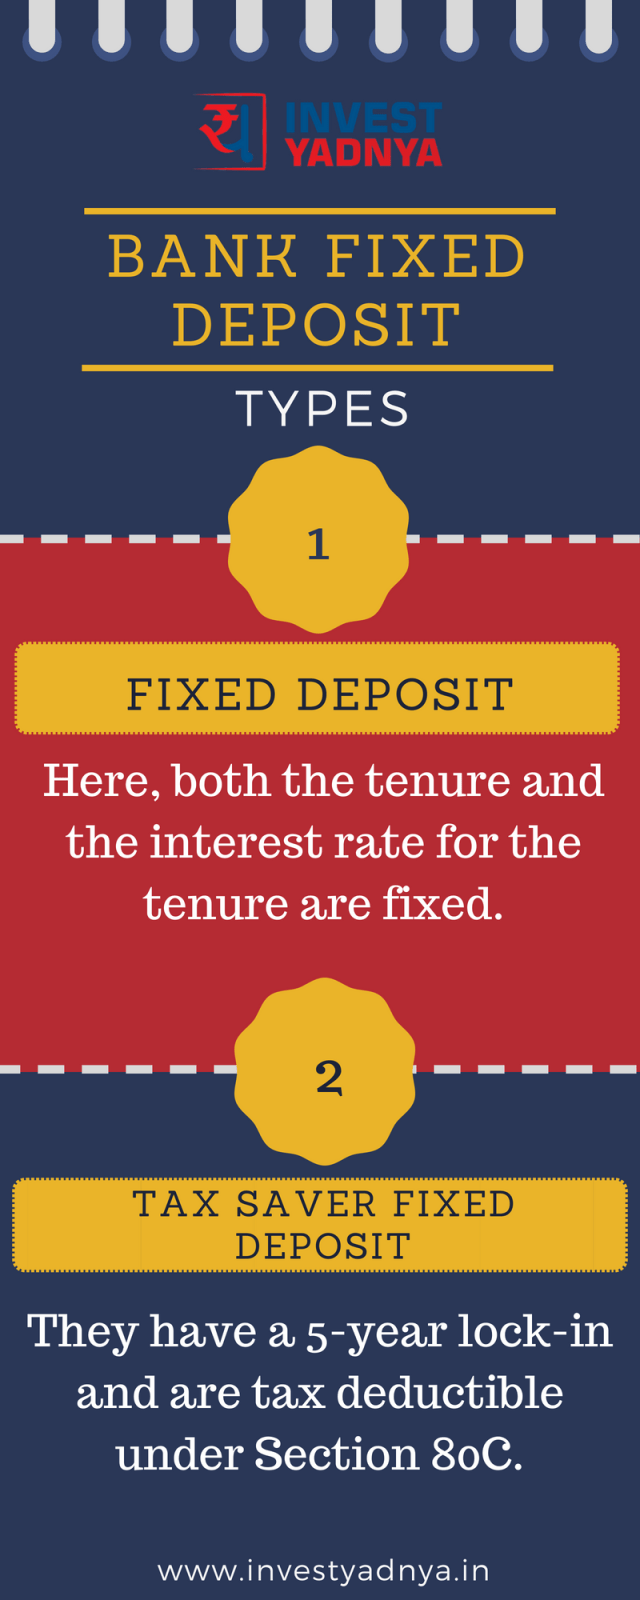 Types of Bank Fixed Deposit with Info